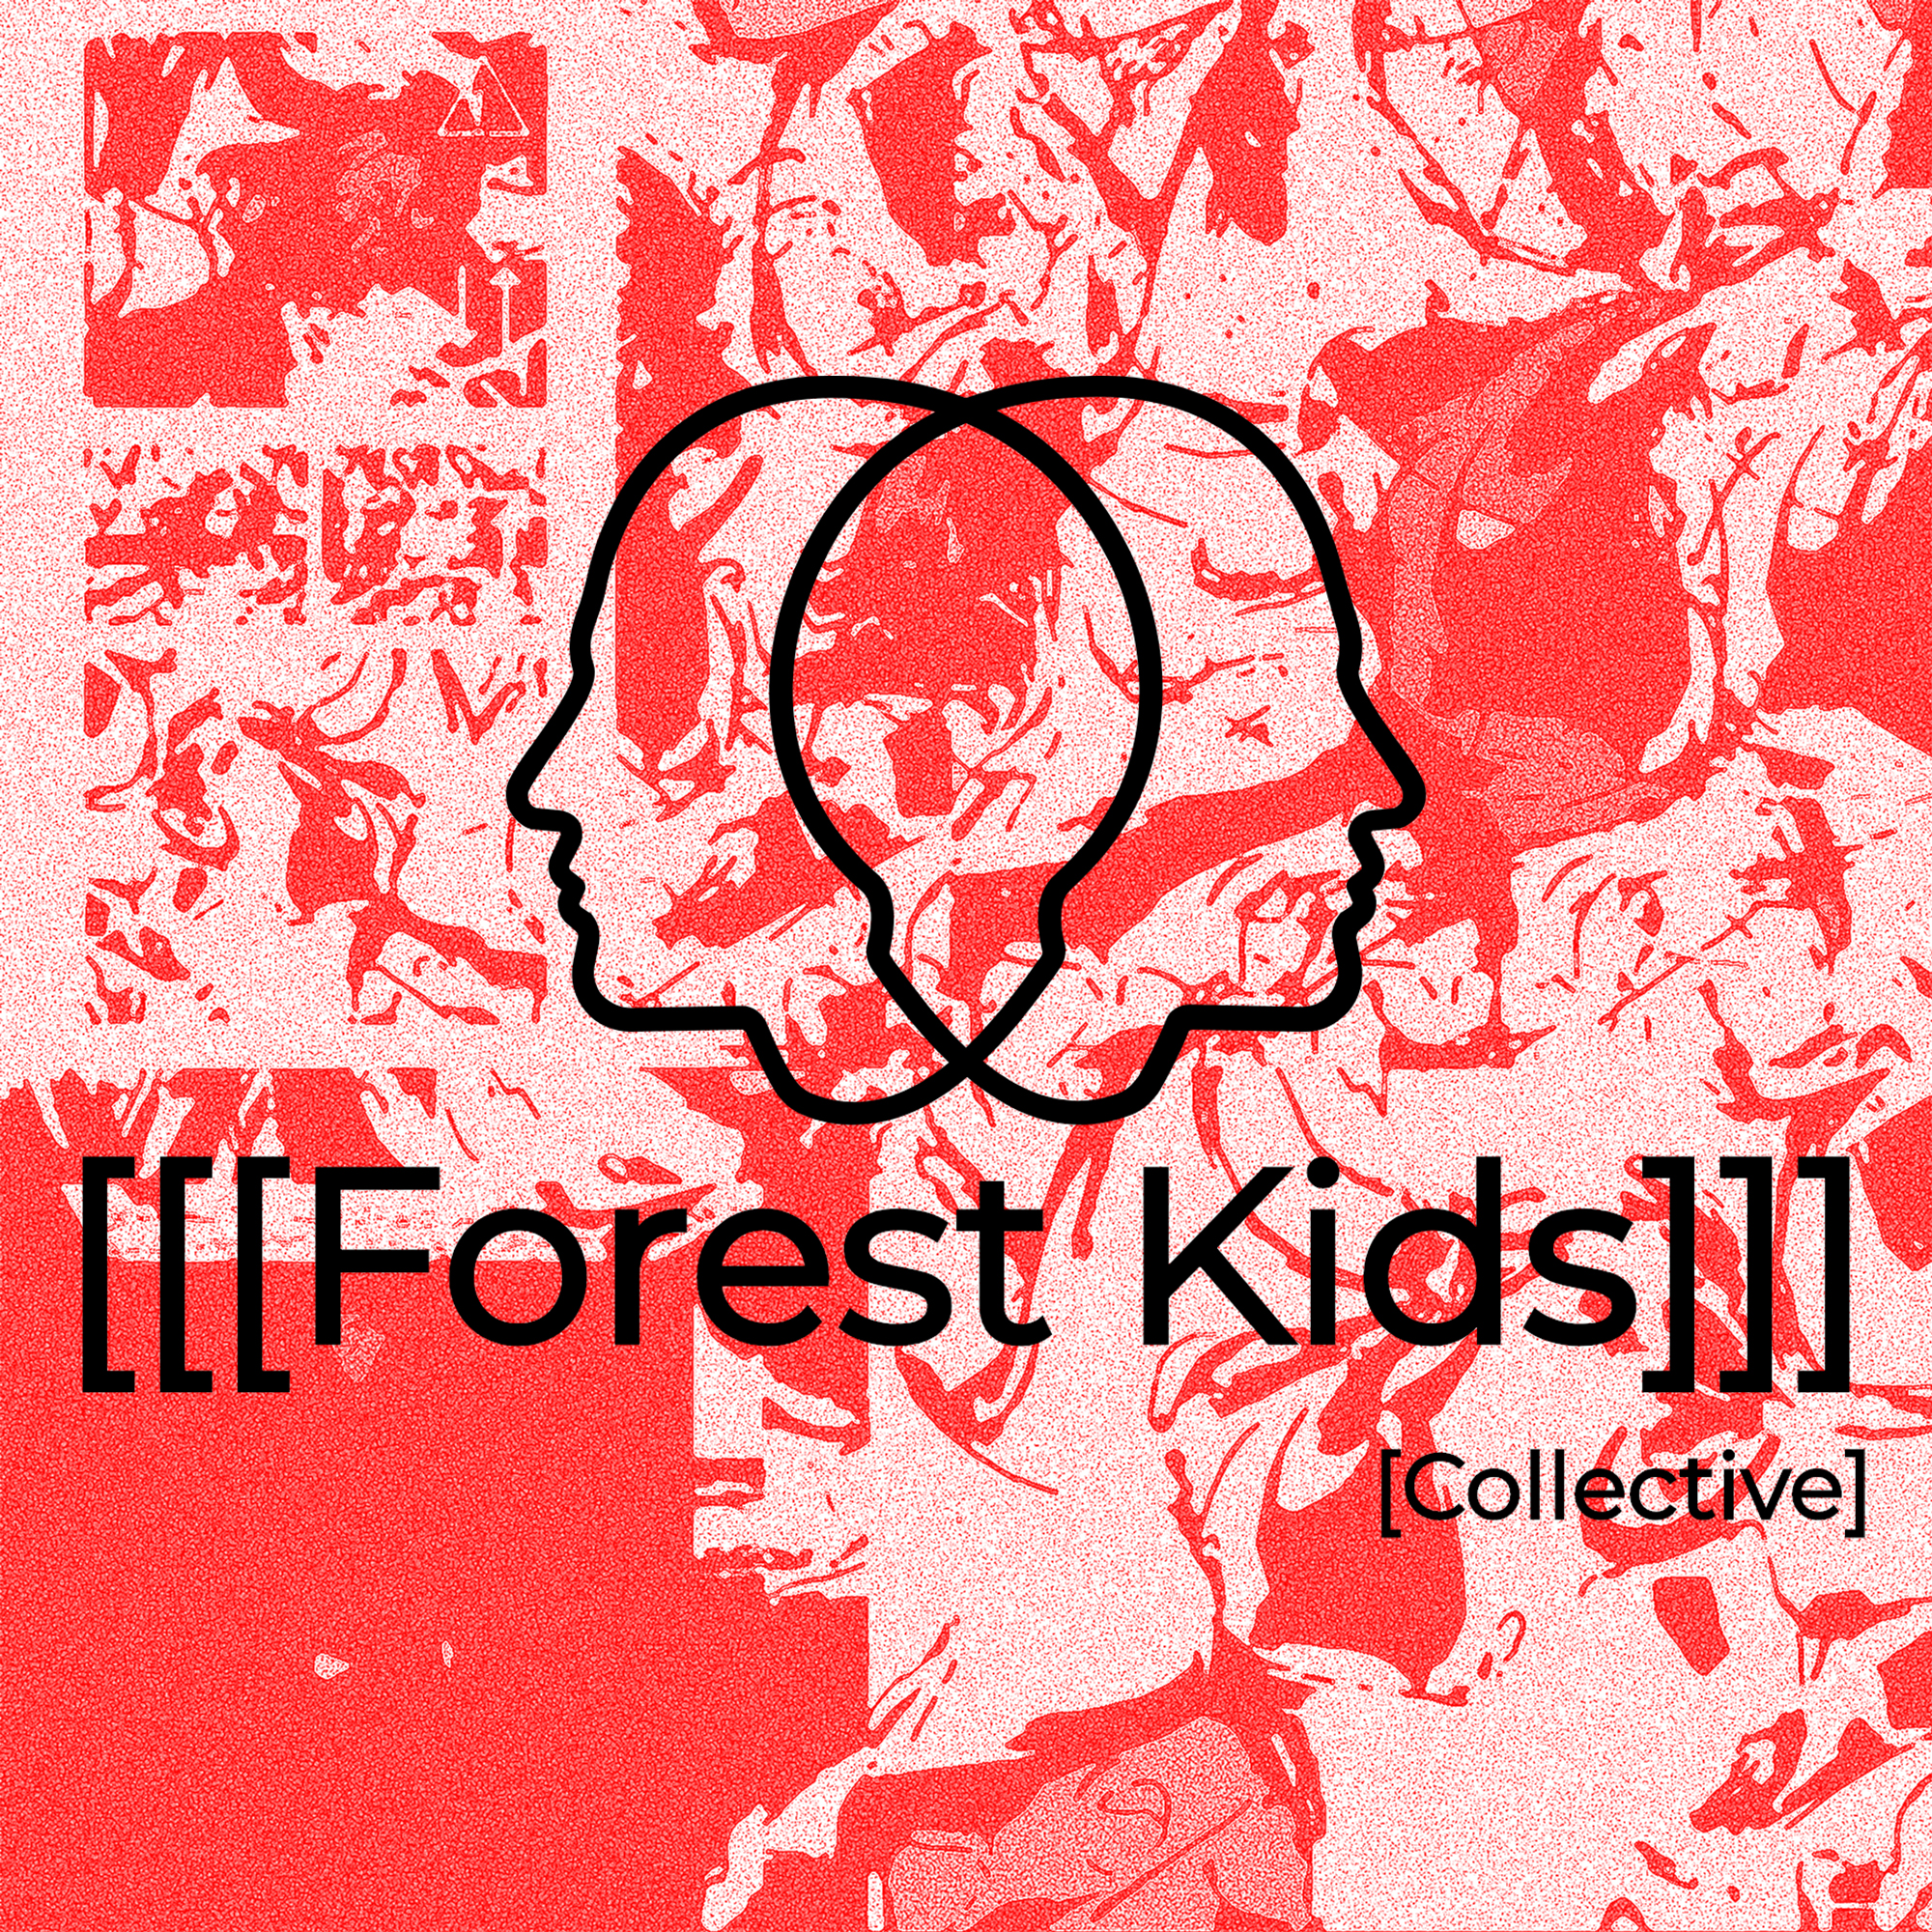 Forest Kids Collective Rap.jpg